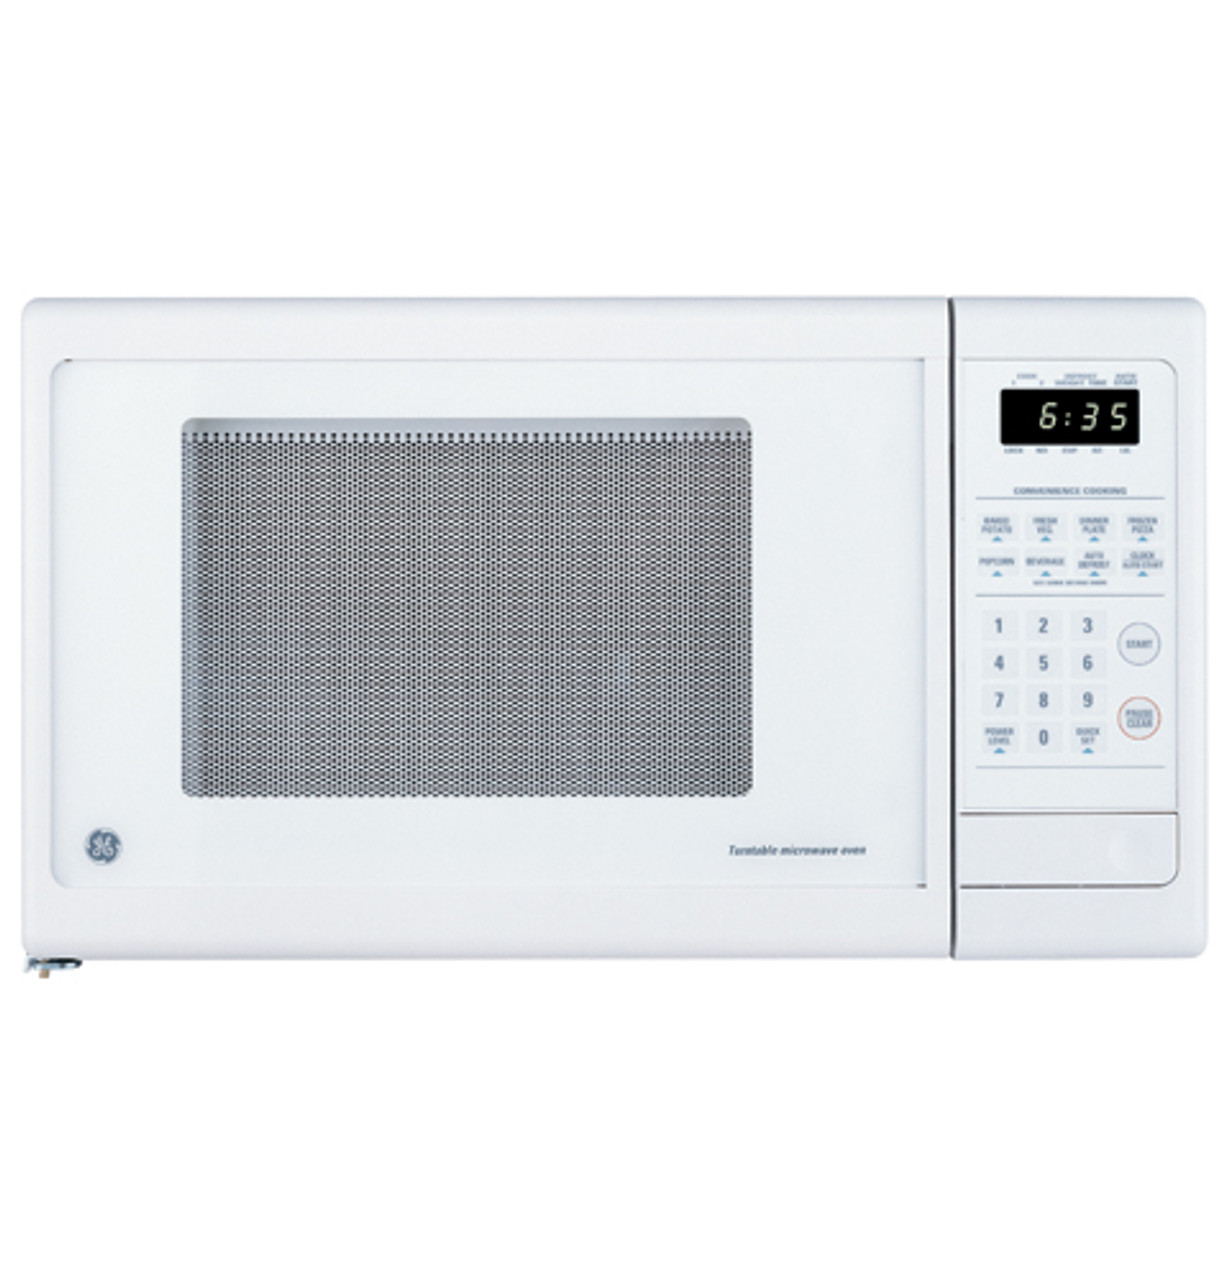 ge countertop turntable microwave oven je635wc